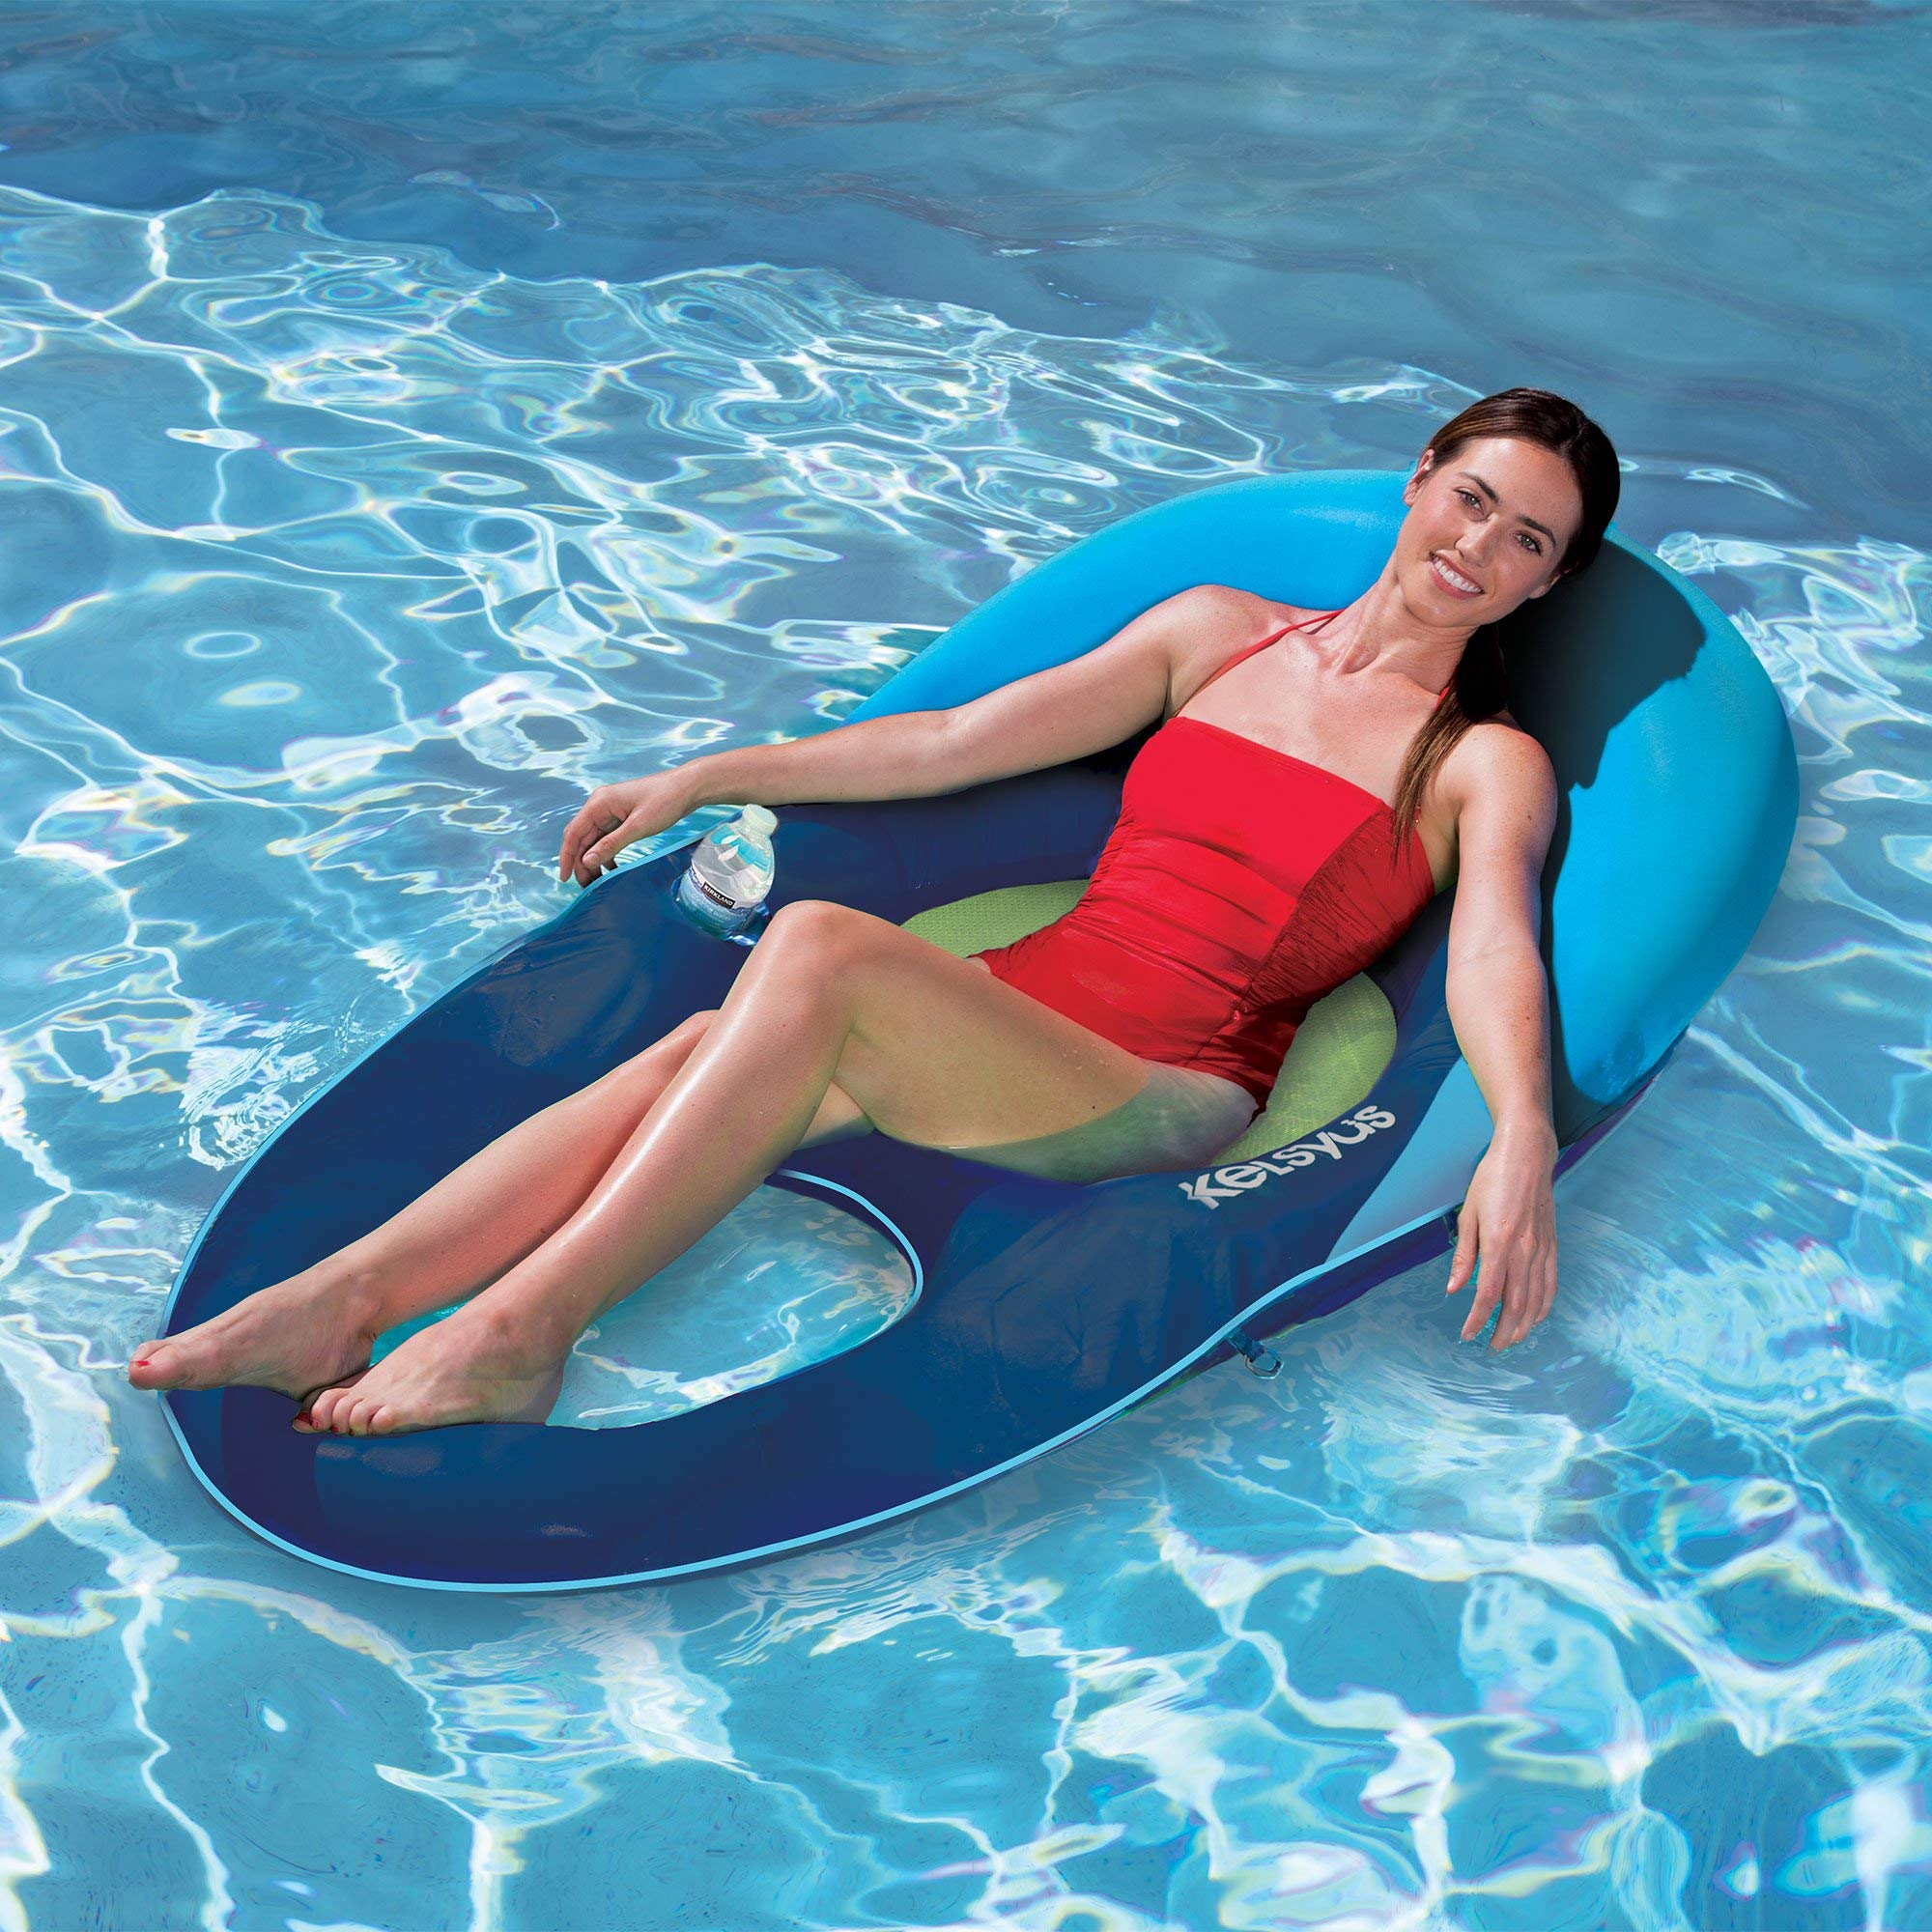 Kelsyus Deluxe Inflatable Floating Pool Lake Chaise Lounger, Blue and Green